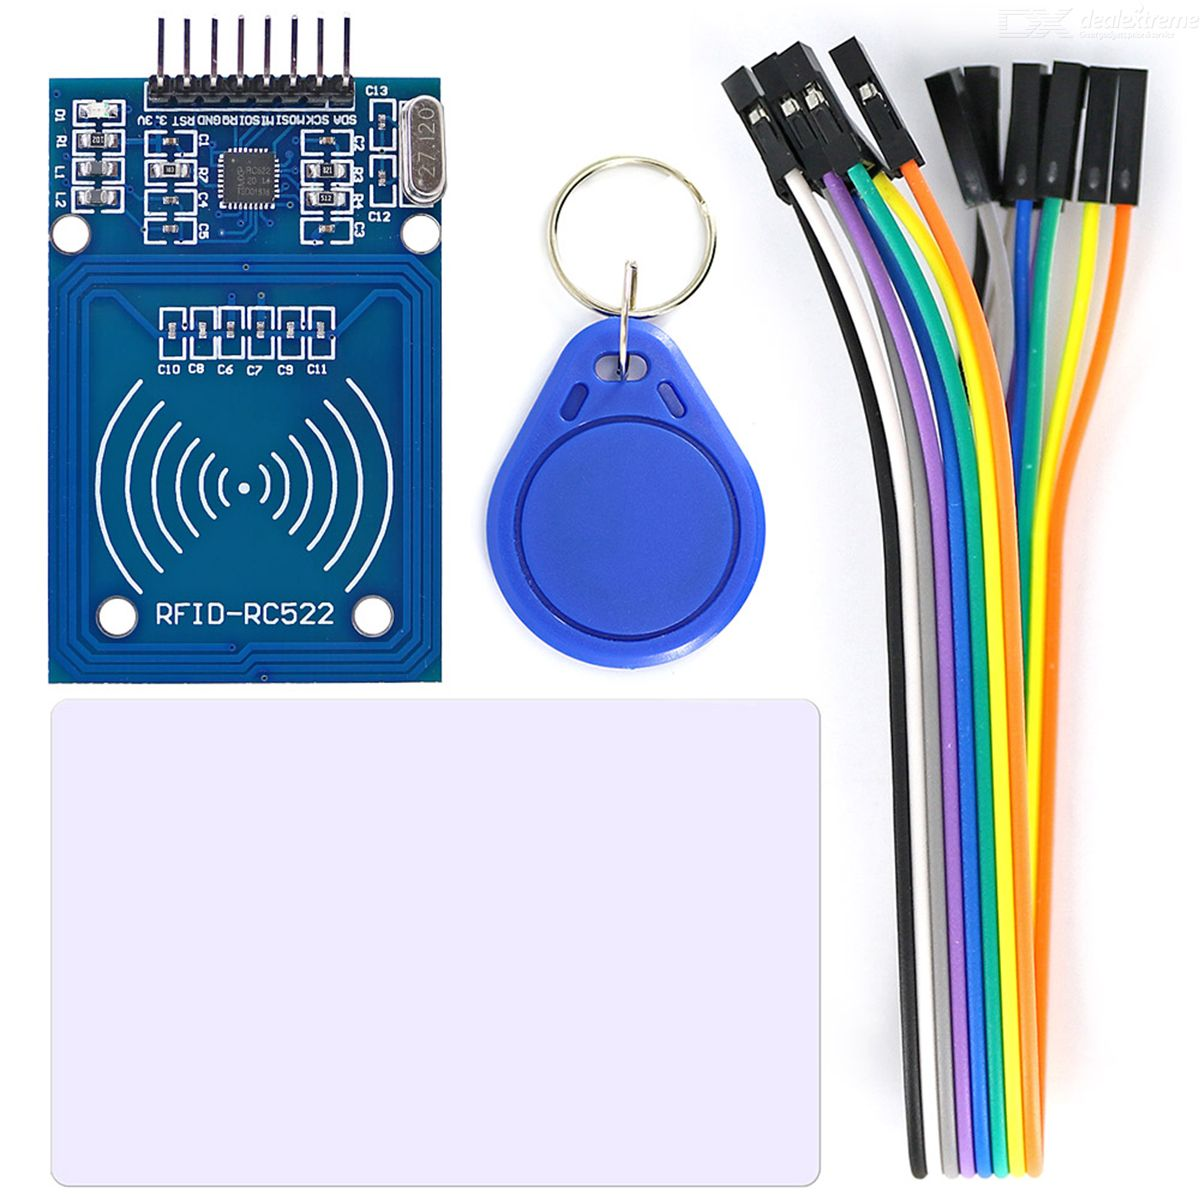 OPEN-SMART RC522 RFID Card Reader Module Kit w/ 8P Cable for Arduino